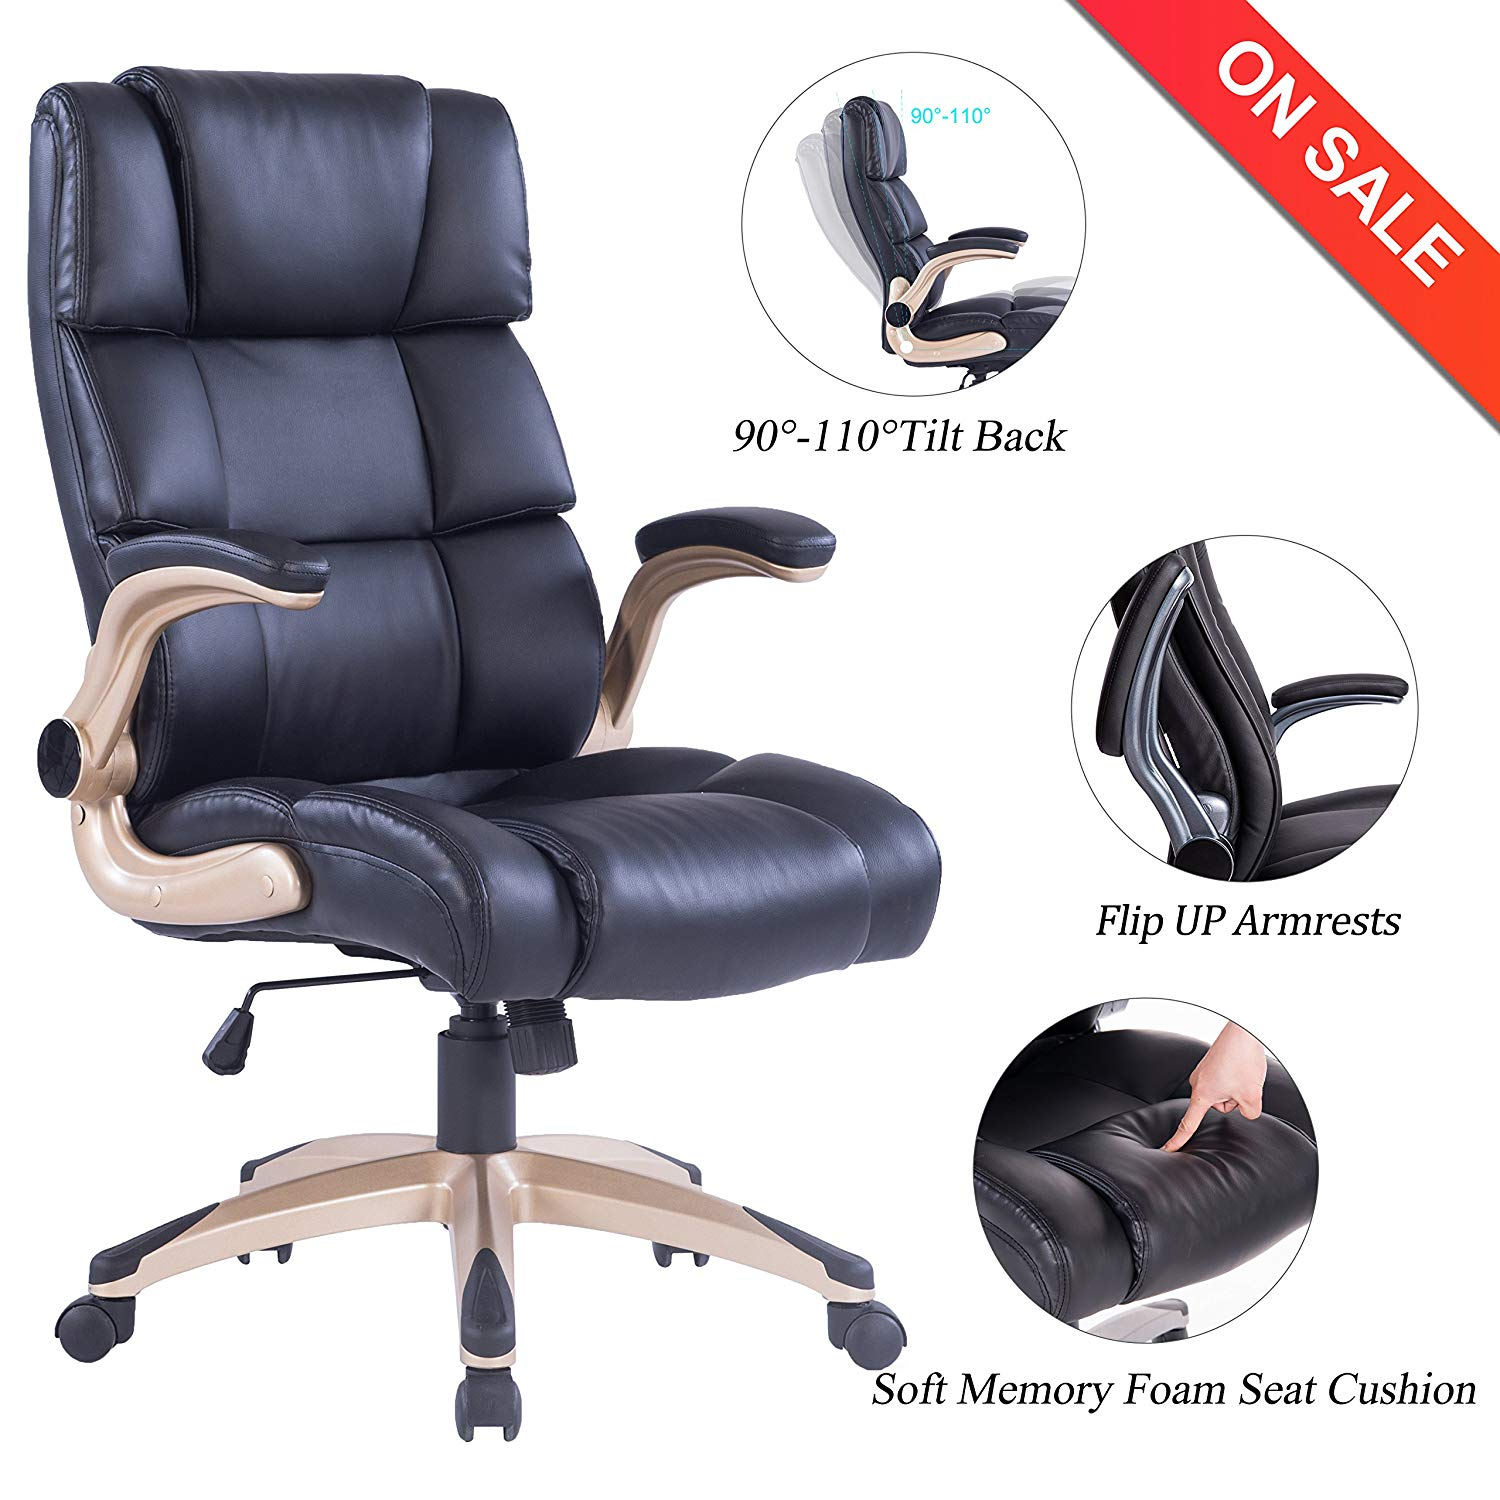 VANBOW High Back Office Chair - Ergonomic PU Leather Computer Desk Executive Chair, Adjustable Padded Flip-up Arms, Thick Memory Foam Seat Cushion & 360 Degree Rotation for Office Workers & Students